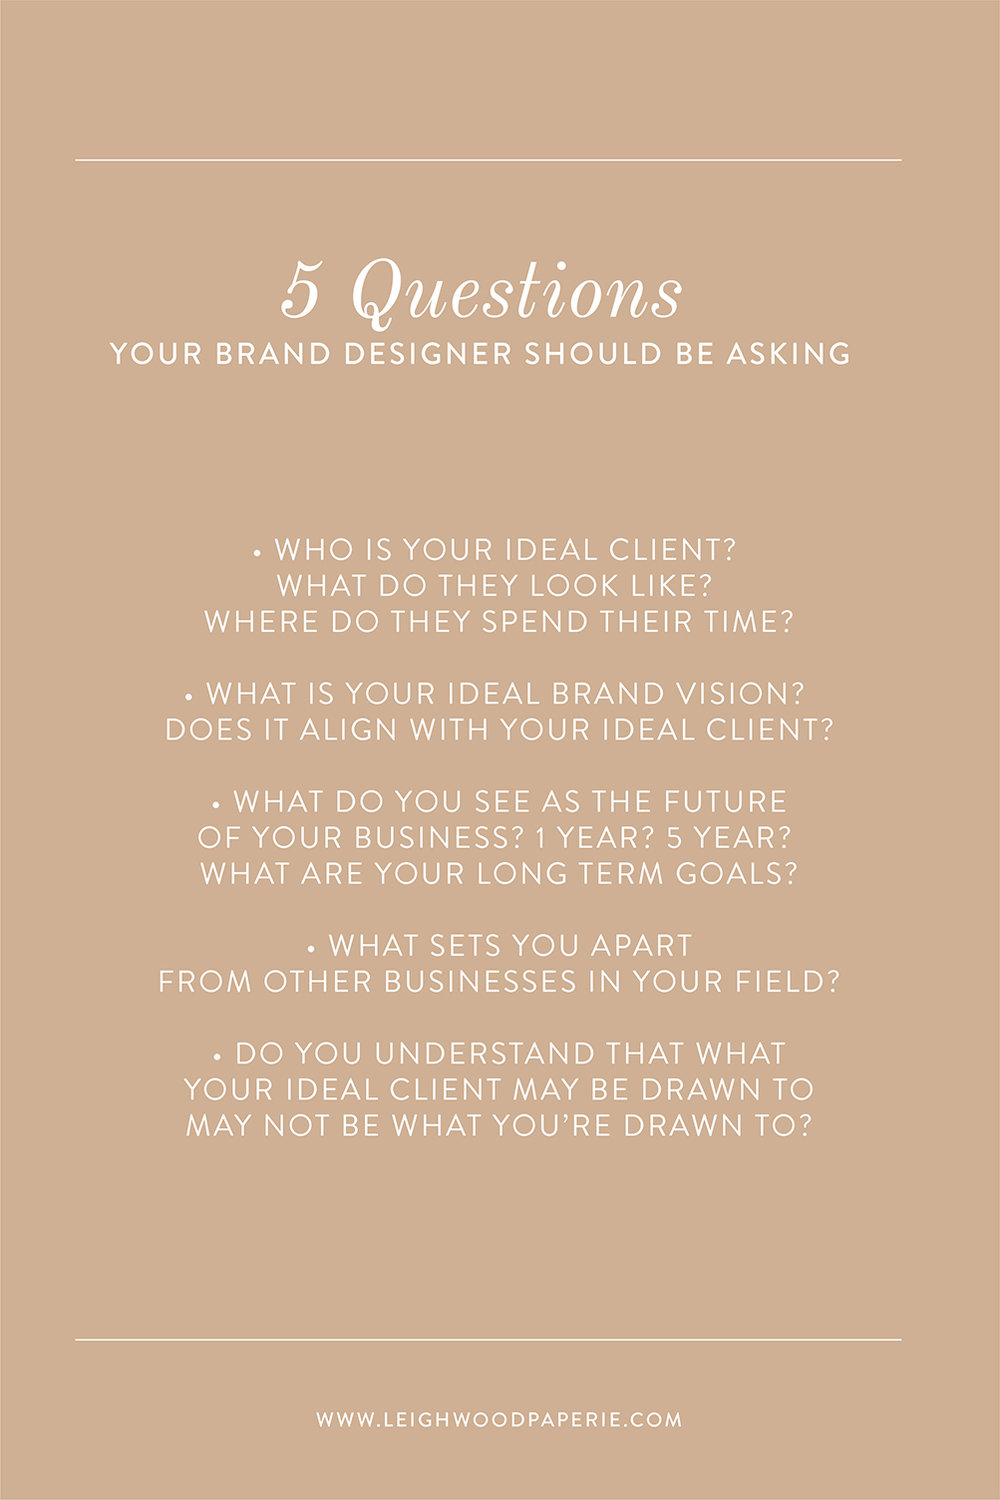 Leighwood Paperie >> The Branding Process: 5 Questions Your Designer Should be Asking